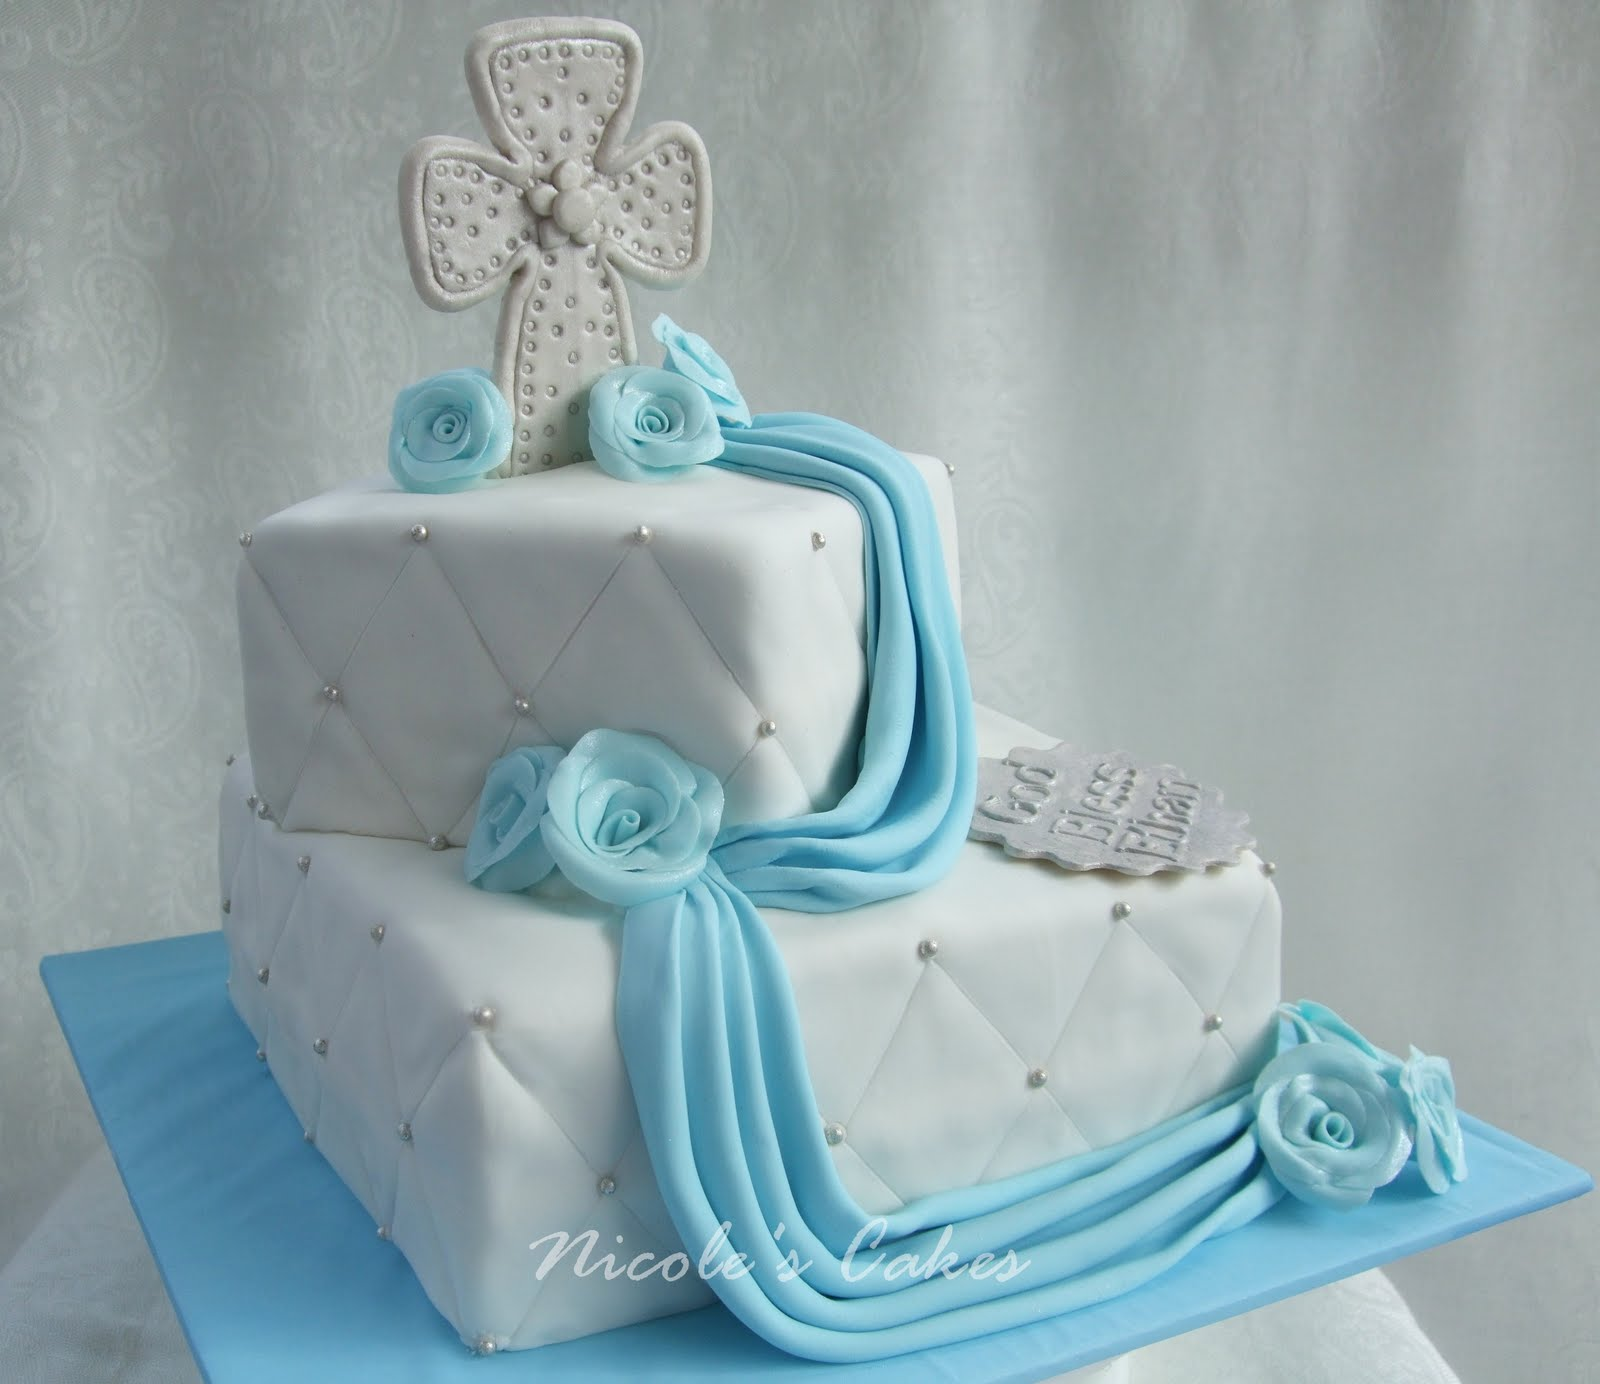 Images Of Cake For Christening : Confections, Cakes & Creations!: Christening/Baptism Cake ...